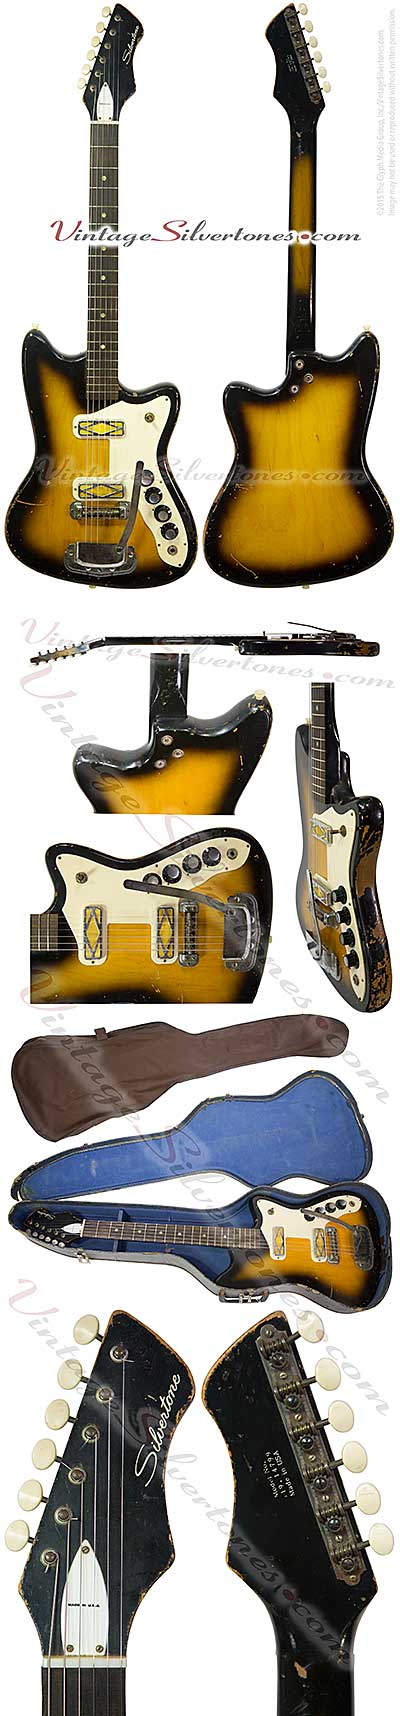 Silvertone -Harmony-made - 1479 solid body electric guitar with 1750 whammy bar double cutaway, tobaccoburst, 2 gold pickups made 1967